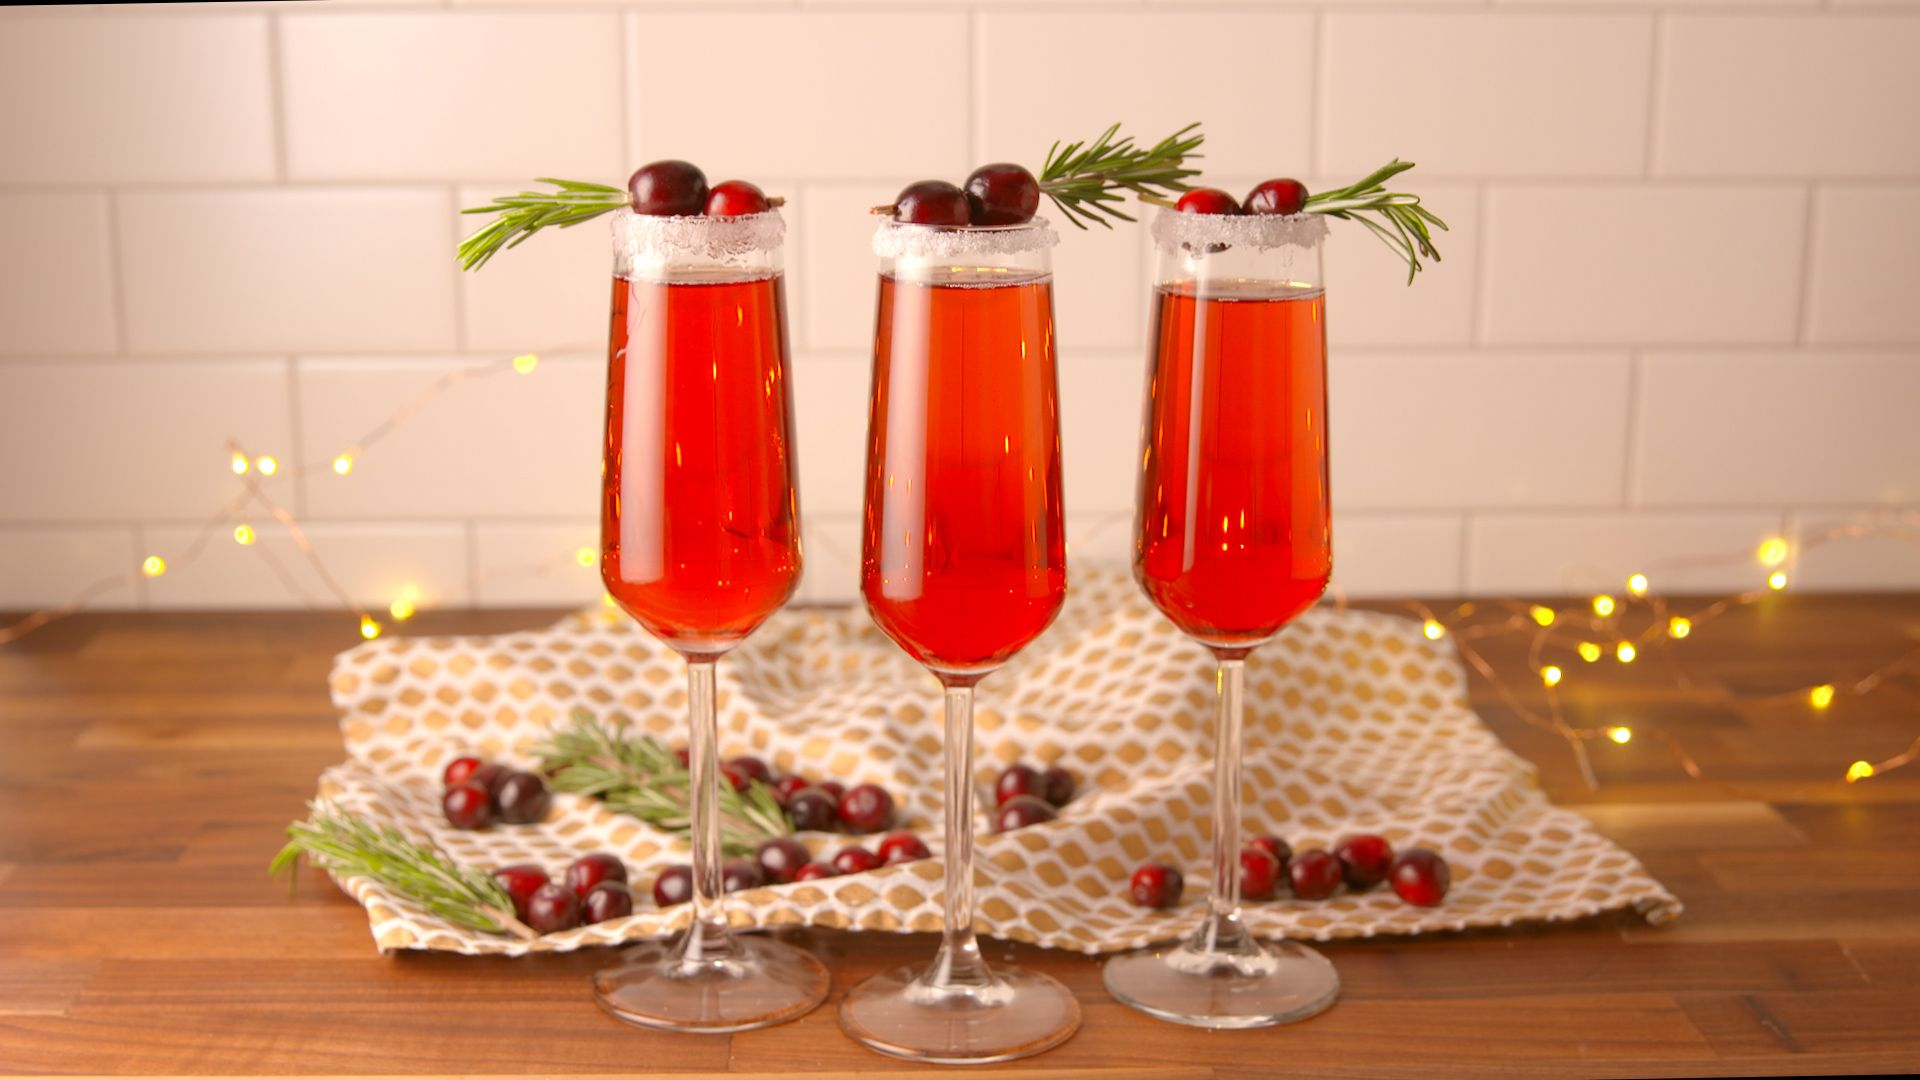 20 Cranberry Juice Tails Recipes For Drinks With Delish